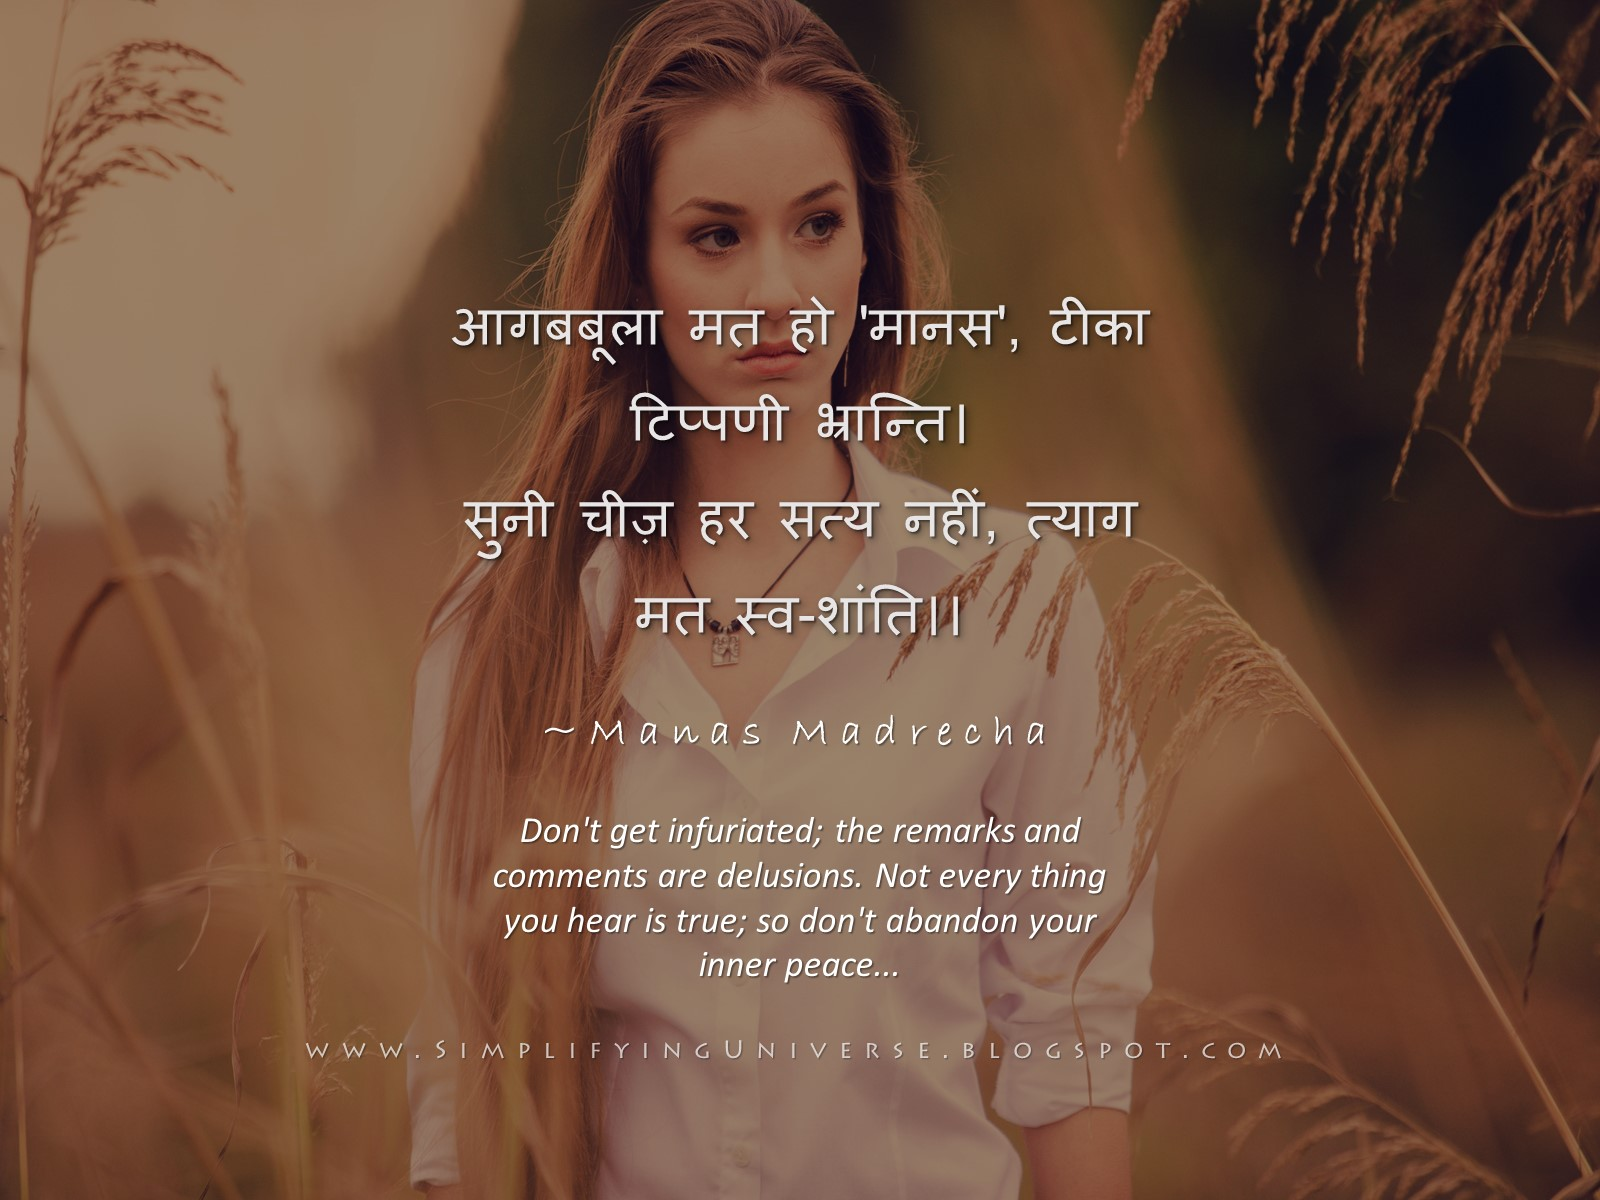 woman autumn field, beautiful girl looking away, hindi poem on criticism anger rumours, manas madrecha, hindi quotes anger management, simplifying universe, india mumbai blog, self-help hindi poet